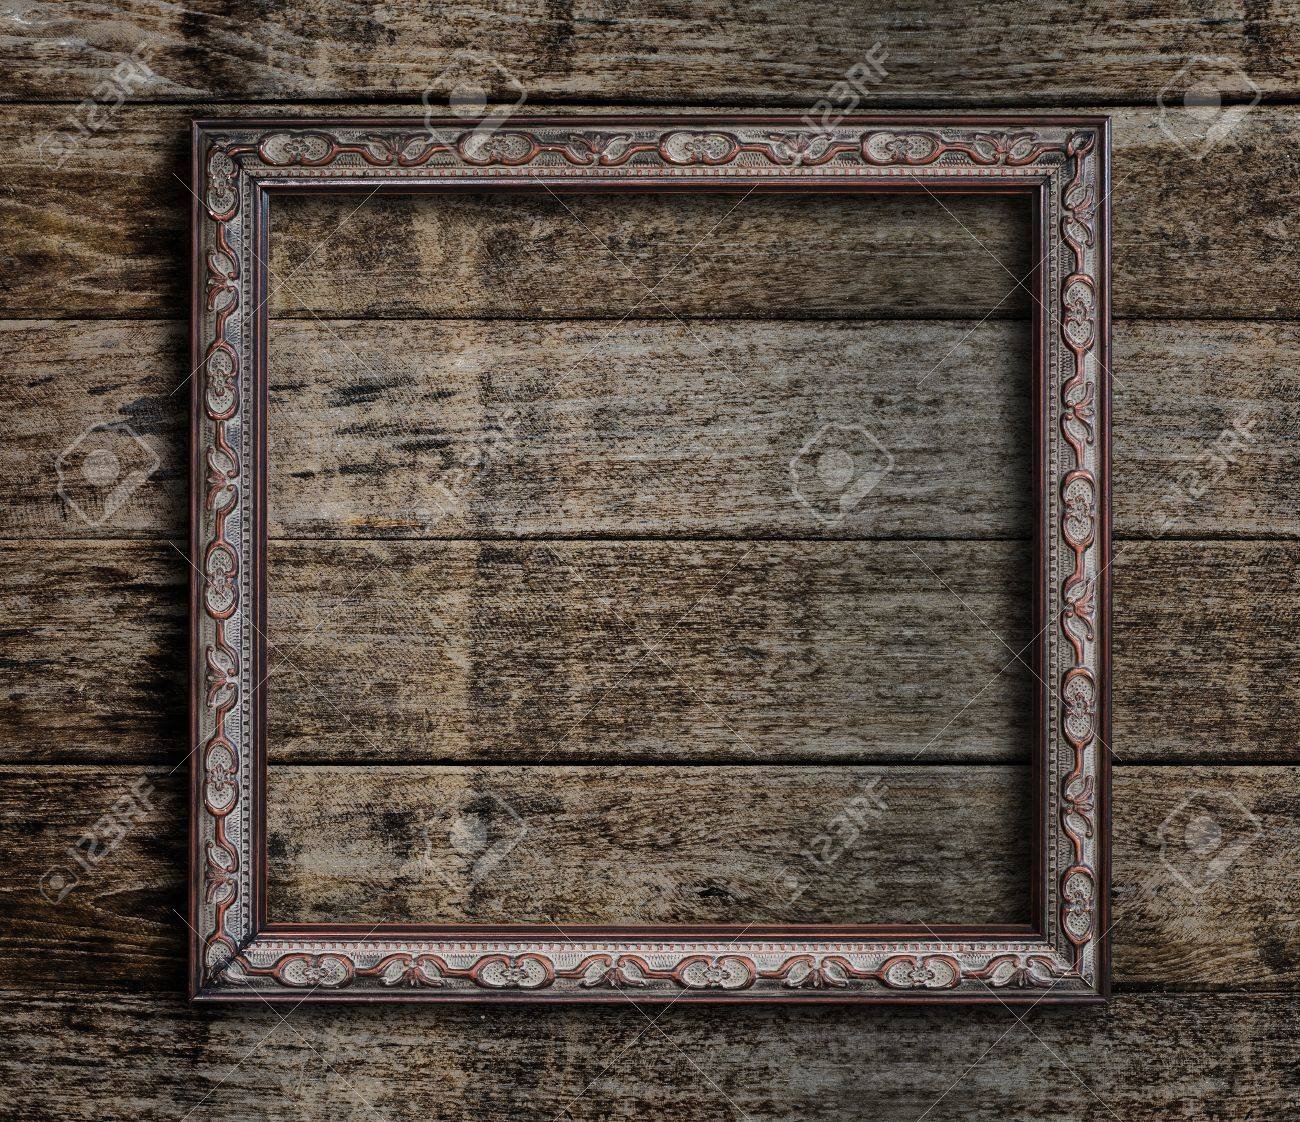 old picture frame on vintage wood wall stock photo picture and